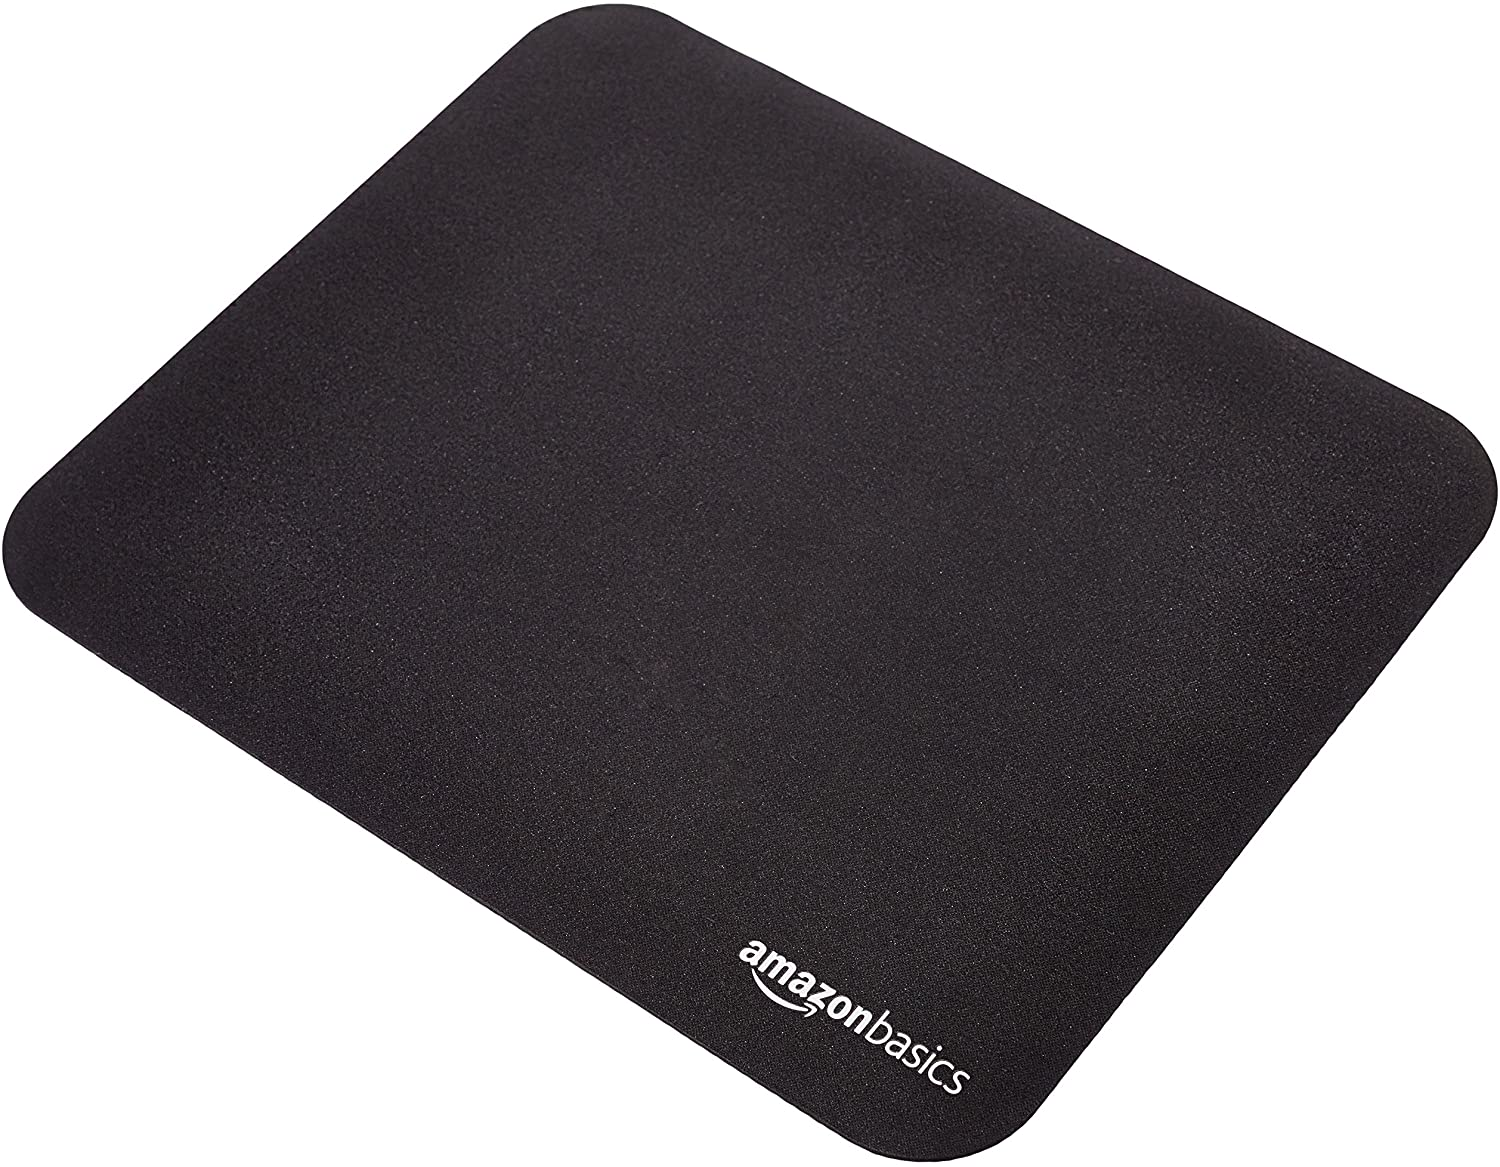 Top Gaming Mousepads under $10 1